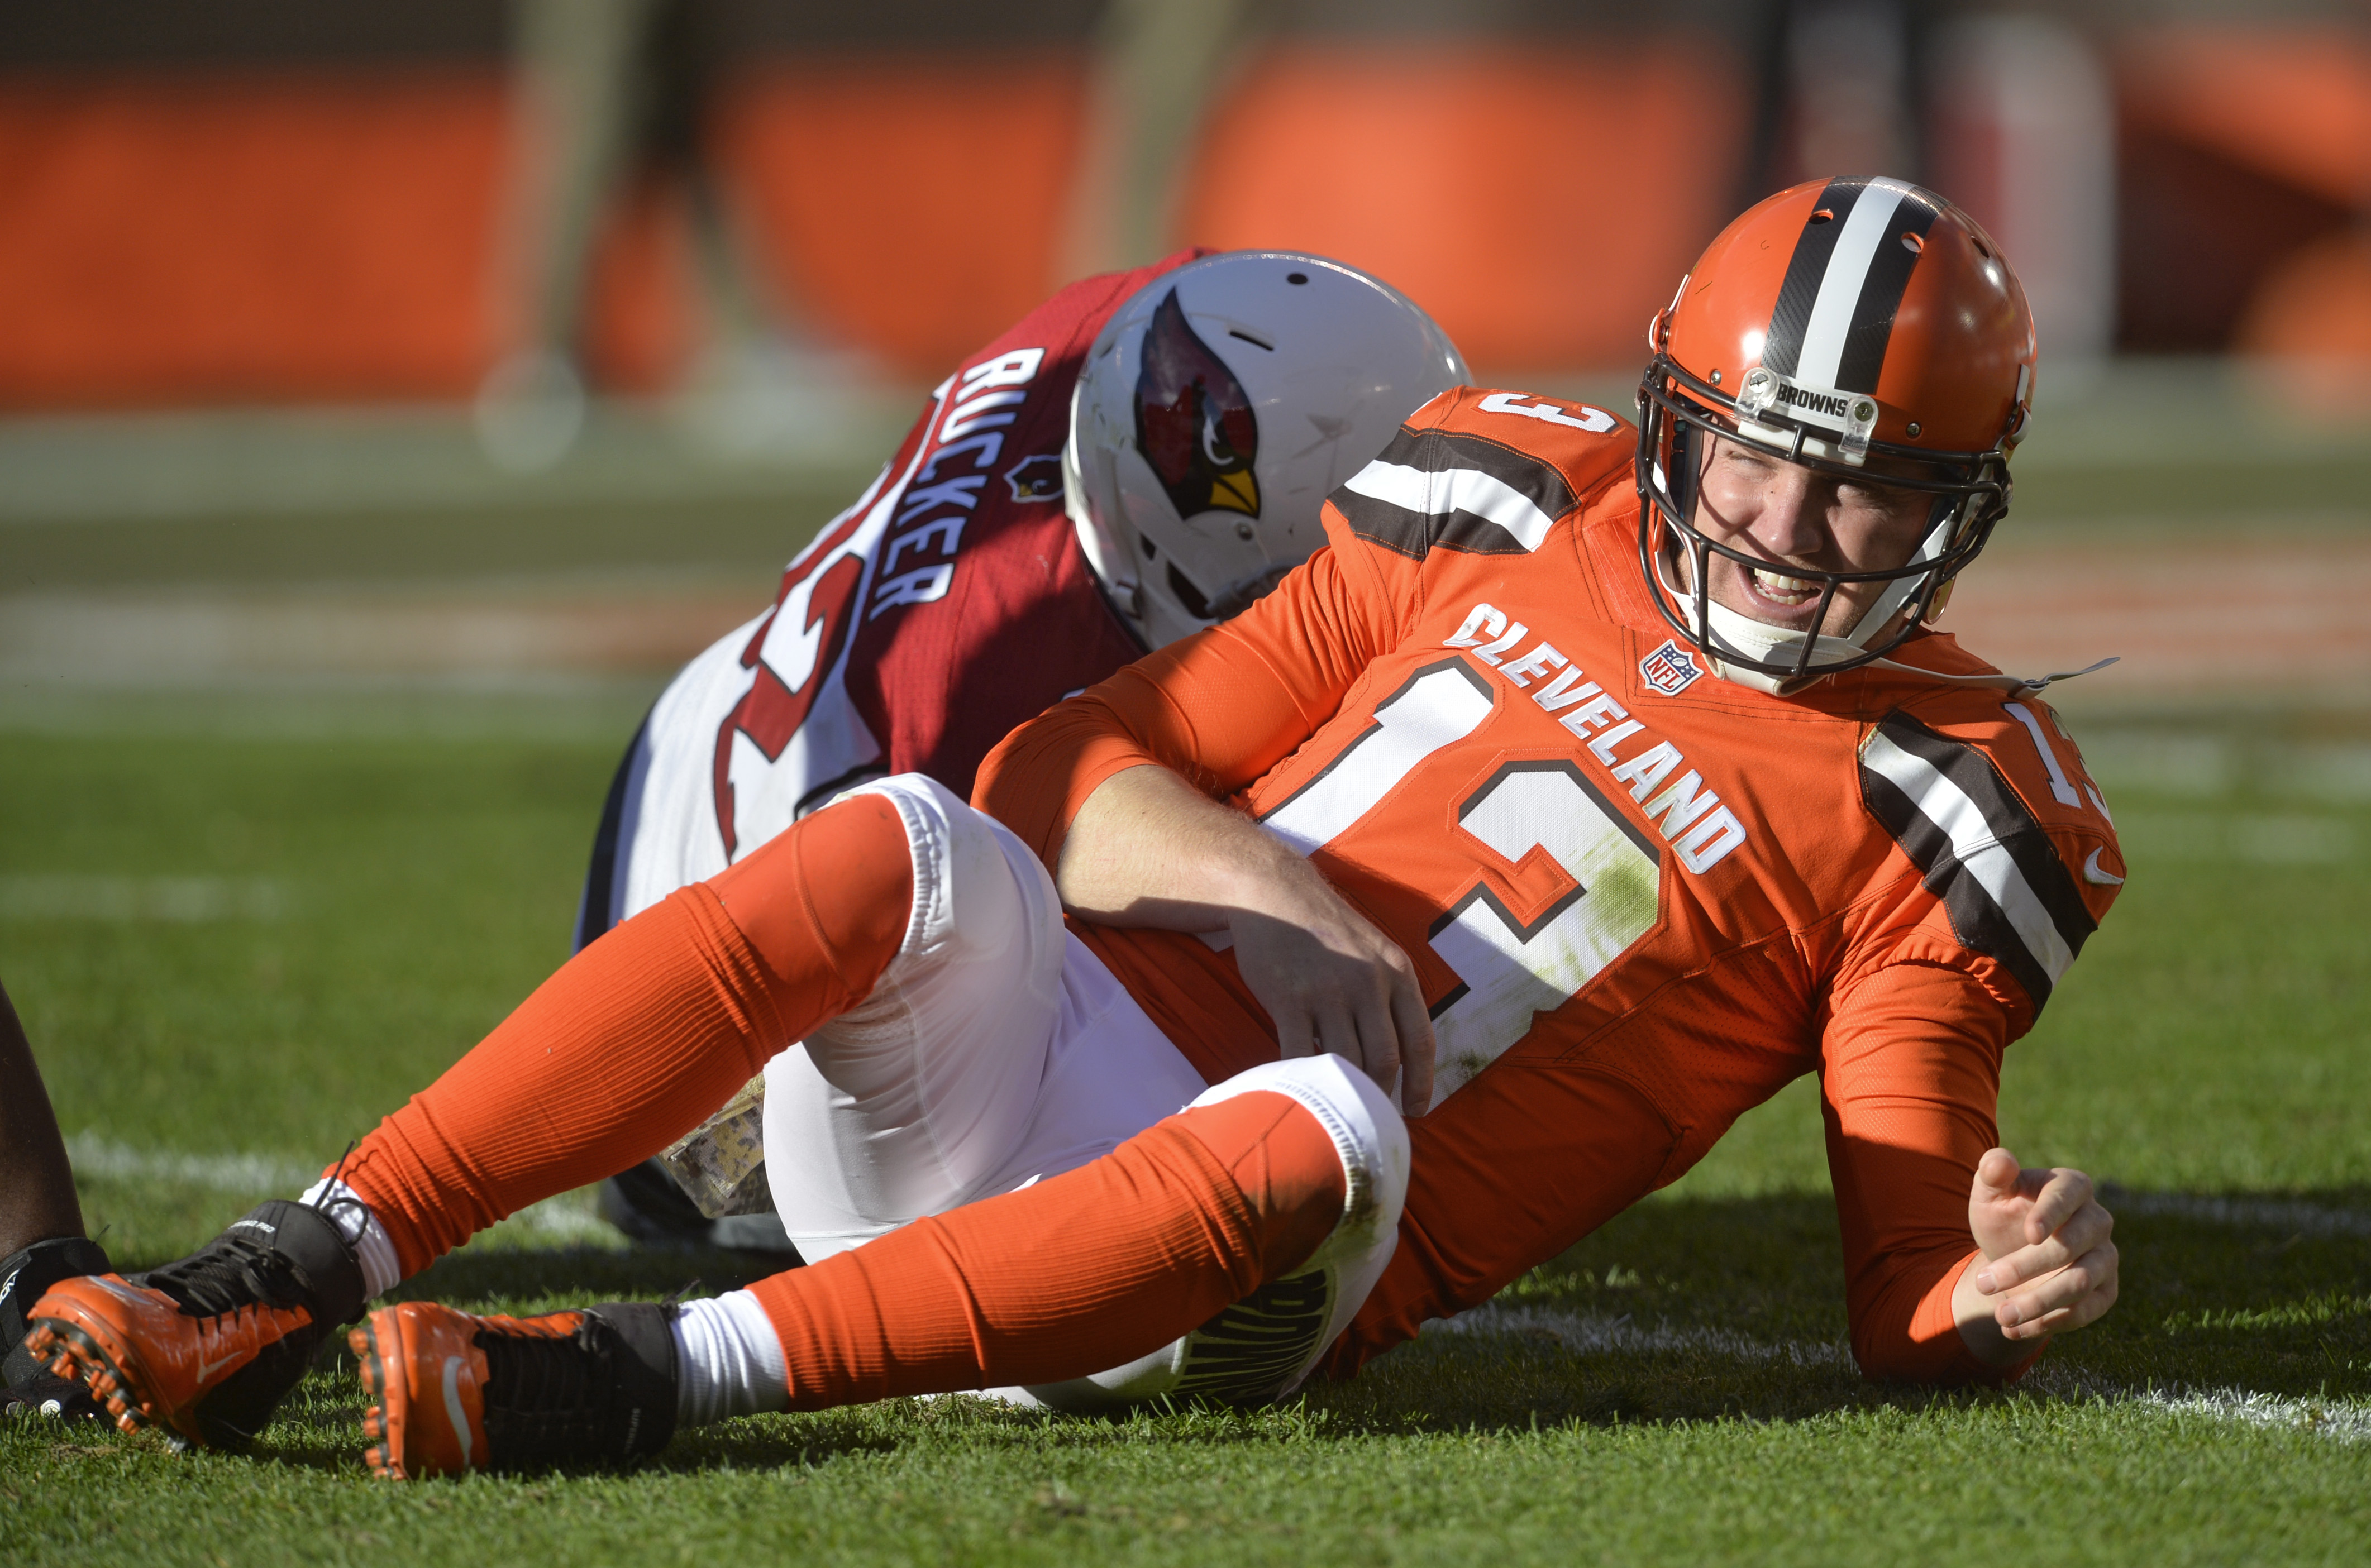 This Sunday, Nov. 1, 2015, photo shows Cleveland Browns quarterback Josh McCown getting up slowly after getting tackled by Arizona Cardinals defensive end Frostee Rucker in an NFL football game, in Cleveland.  Browns coach Mike Pettine says McCown is sore